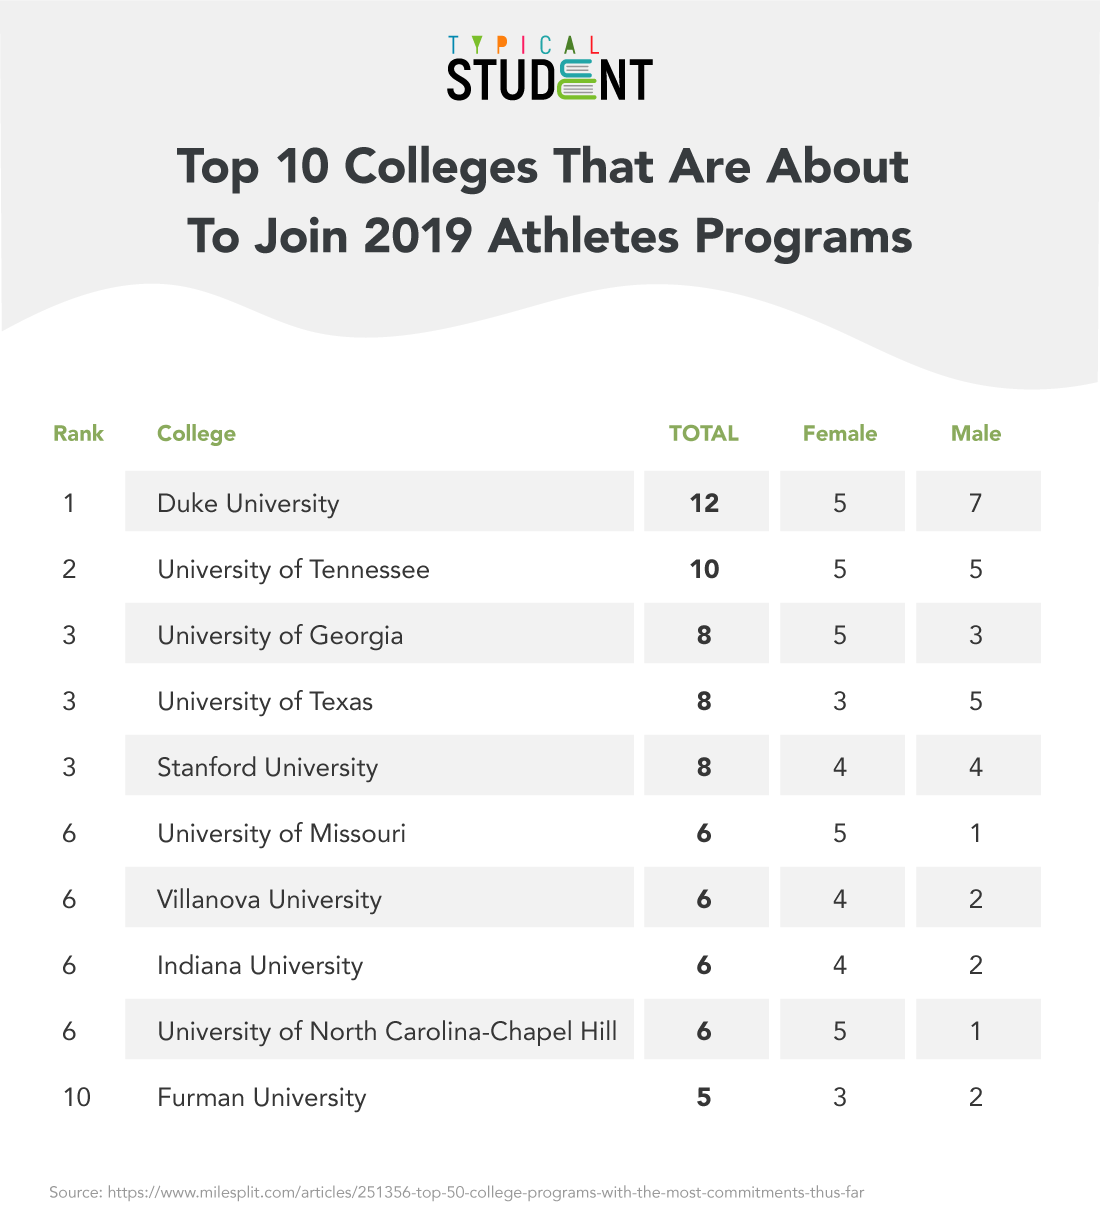 10-colleges-joining-20190-athletes-programs-cover.jpg